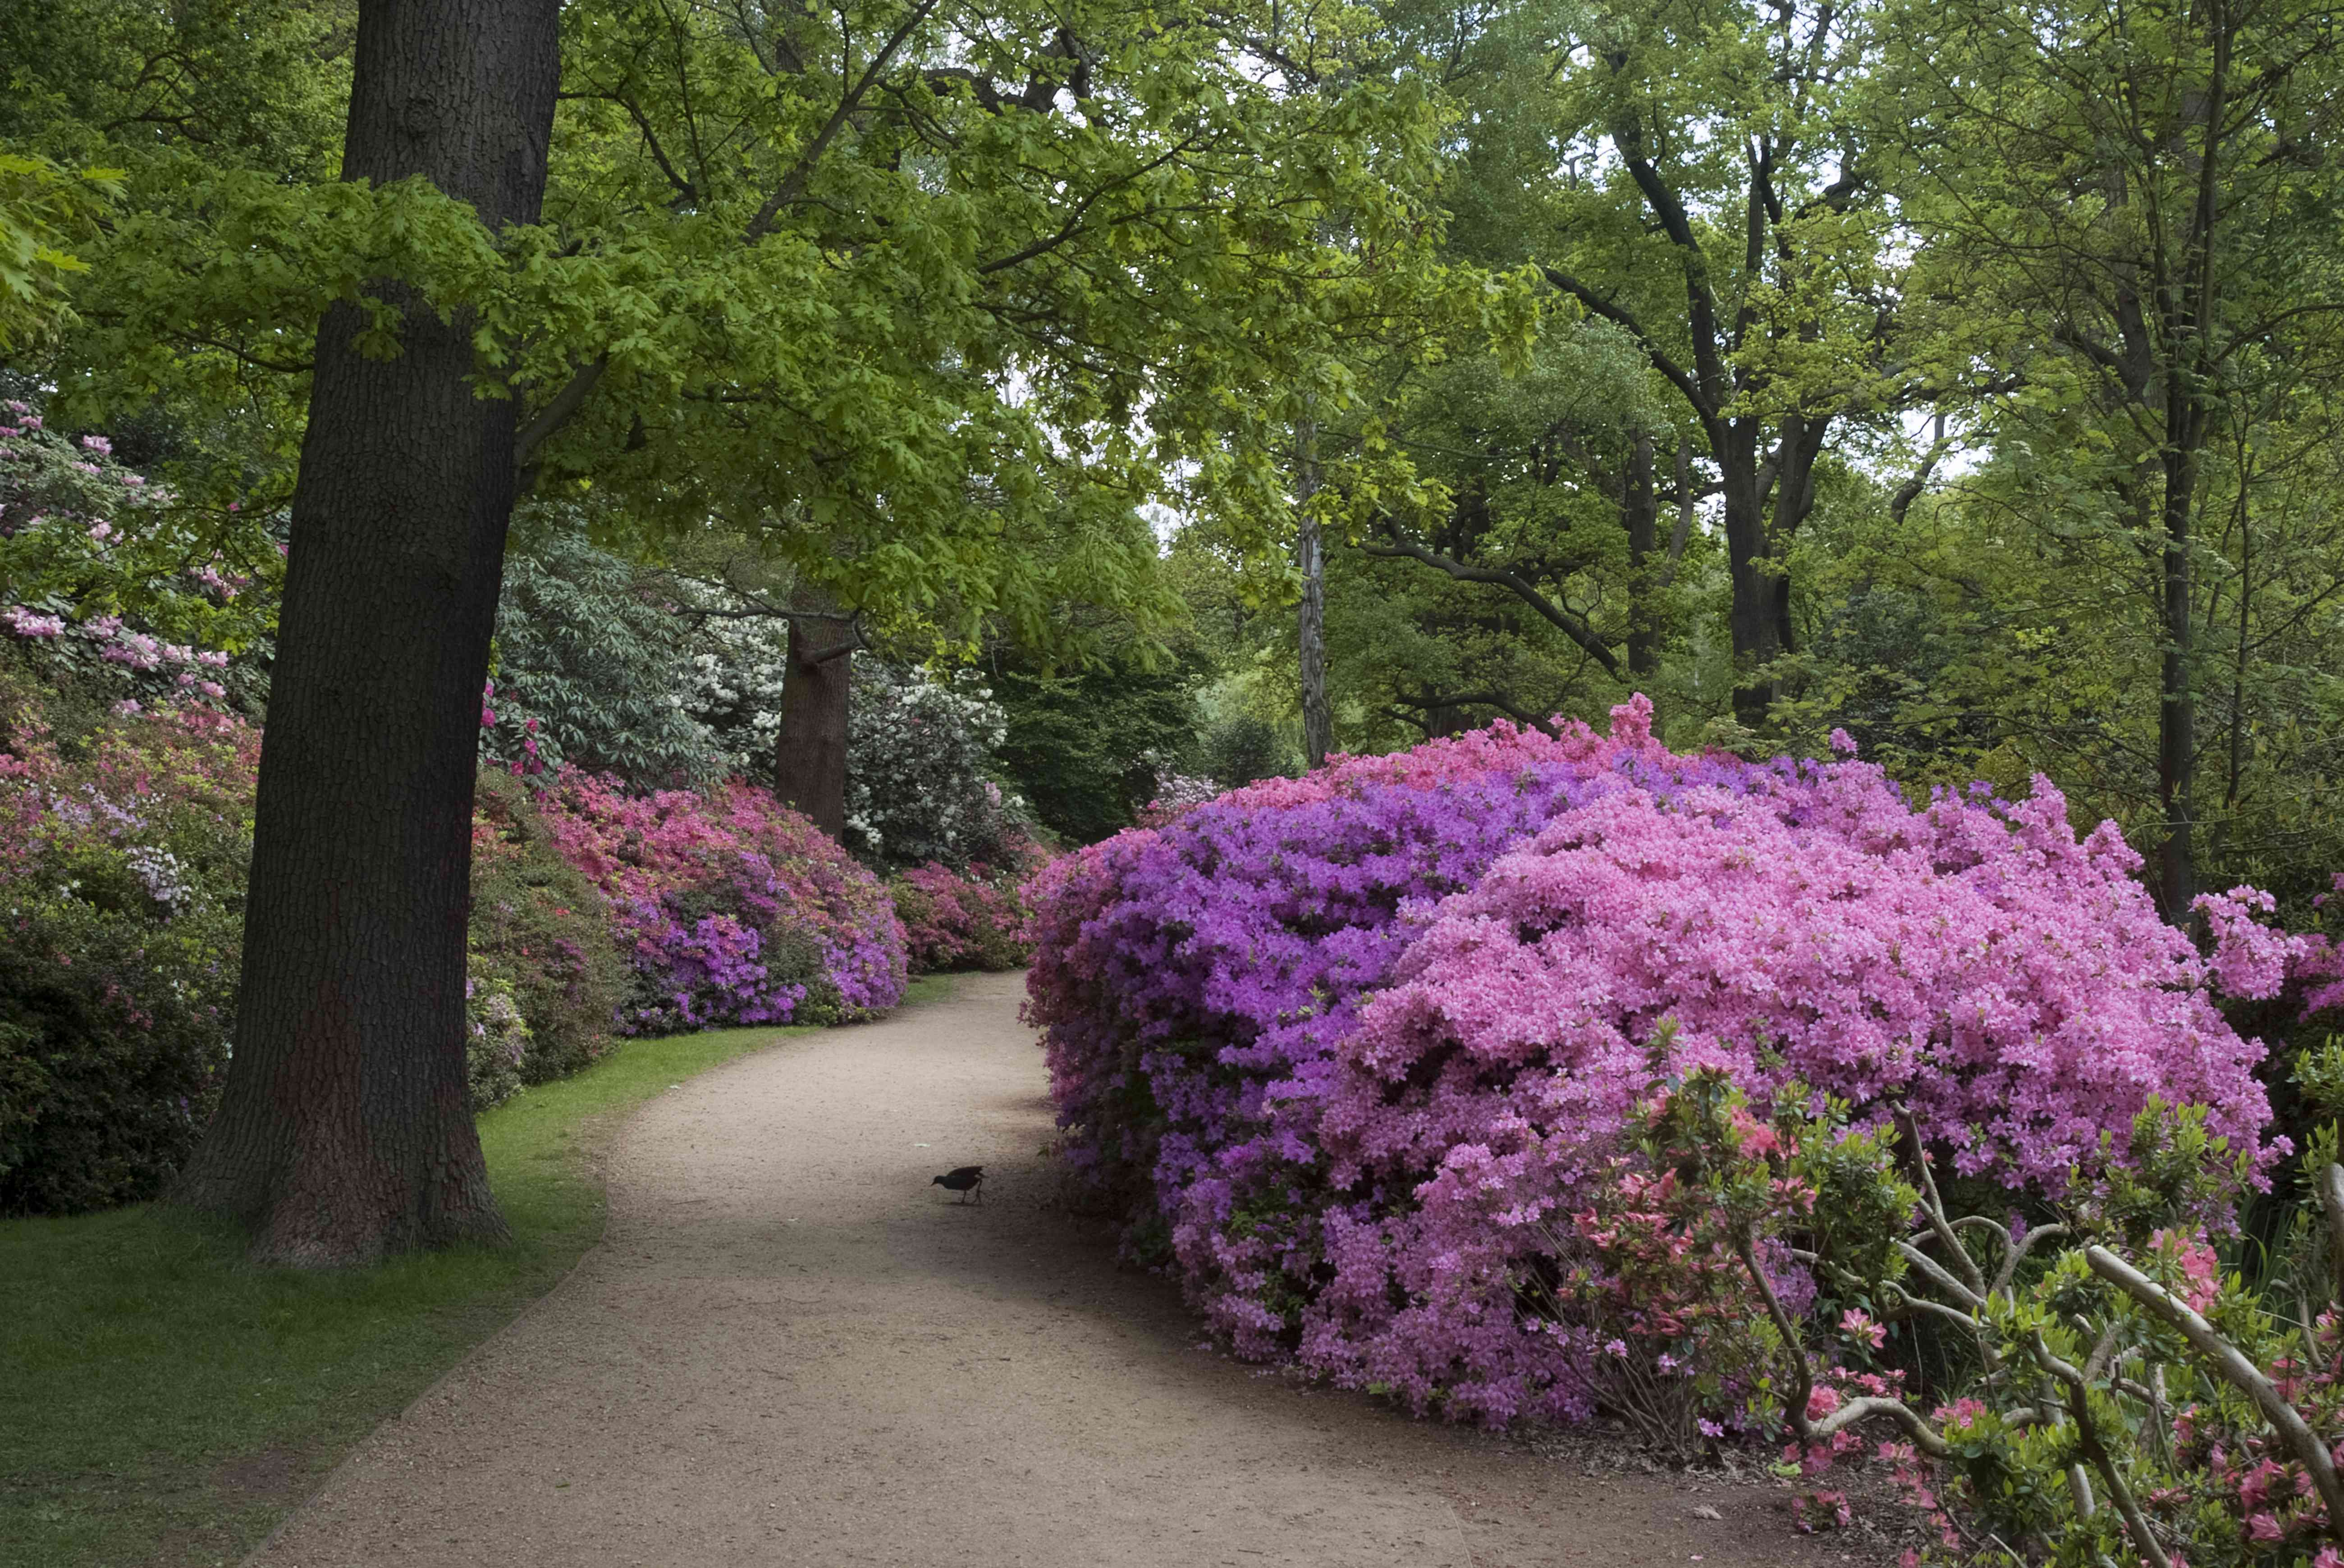 Pink rhododendron lining a sidewalk in the park